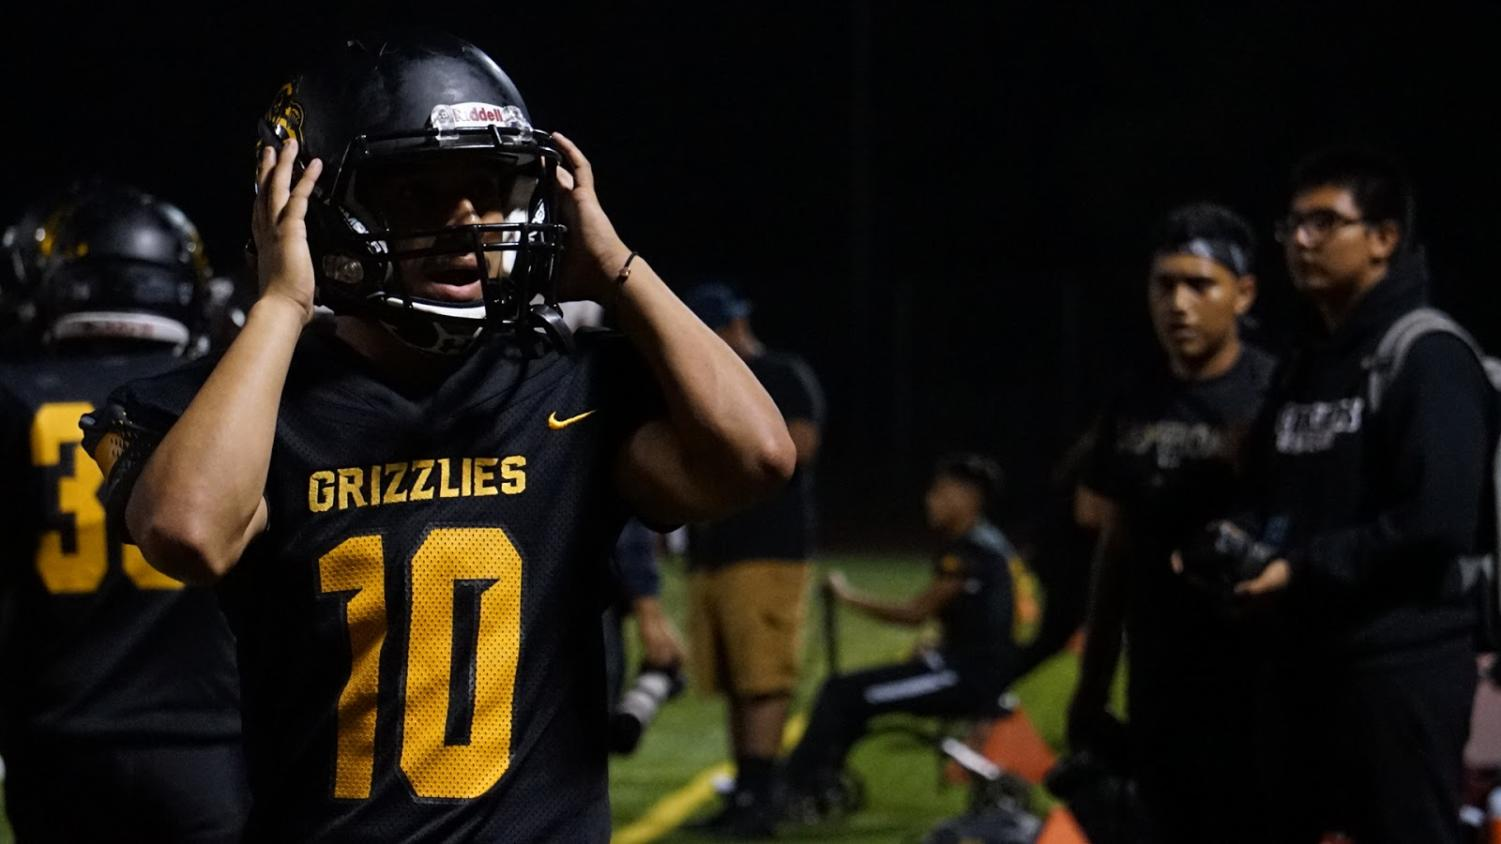 Daniel Munguia, number 10, at the end of the Segerstrom vs. Godinez game, photo taken at 9:00 p.m, Aug. 30, 2019.